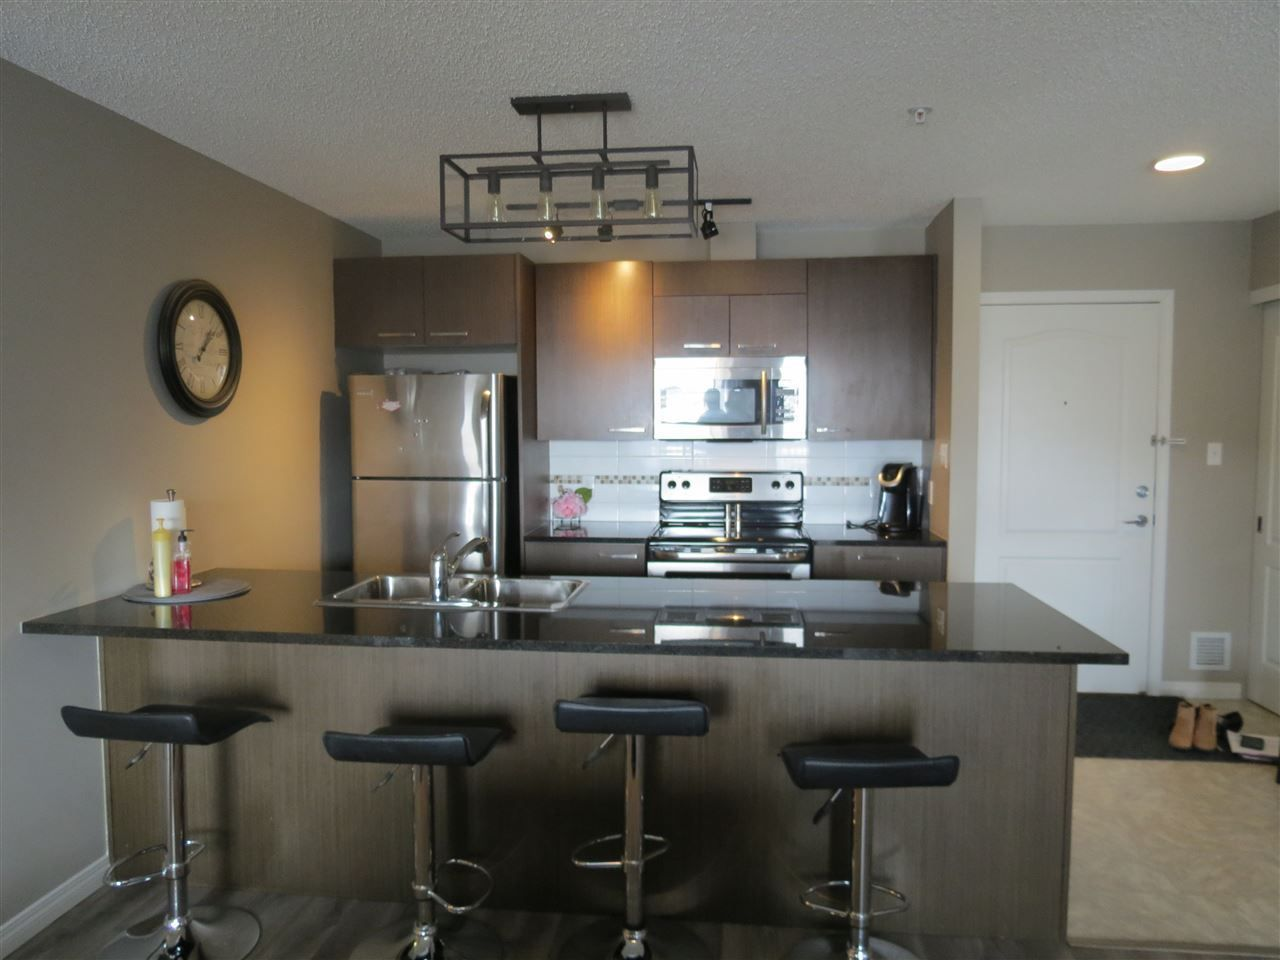 Main Photo: 3322 9351 SIMPSON Drive in Edmonton: Zone 14 Condo for sale : MLS®# E4104548